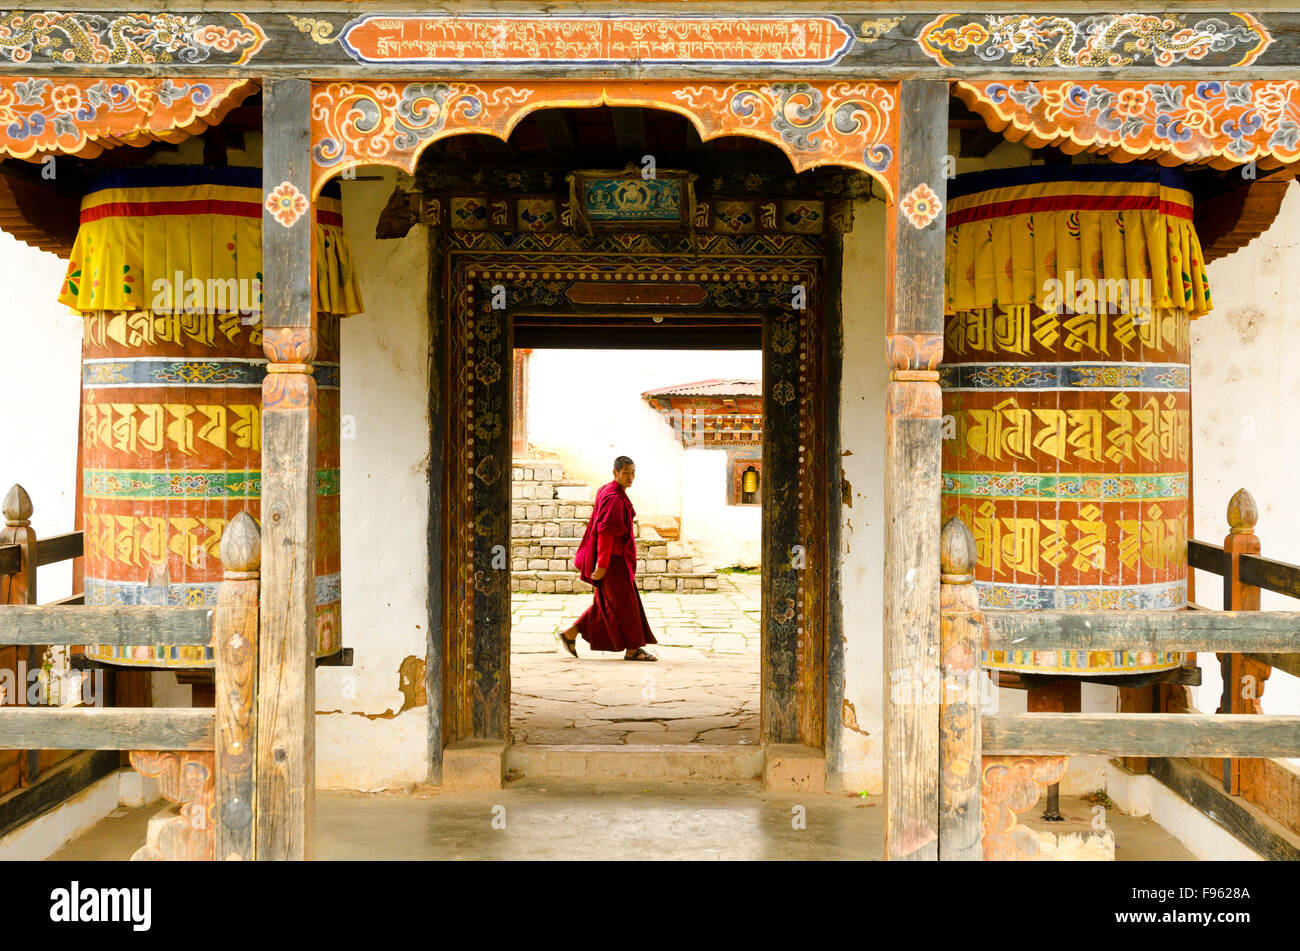 A monk passing by the front doors of Bhutanese monastery - Stock Image